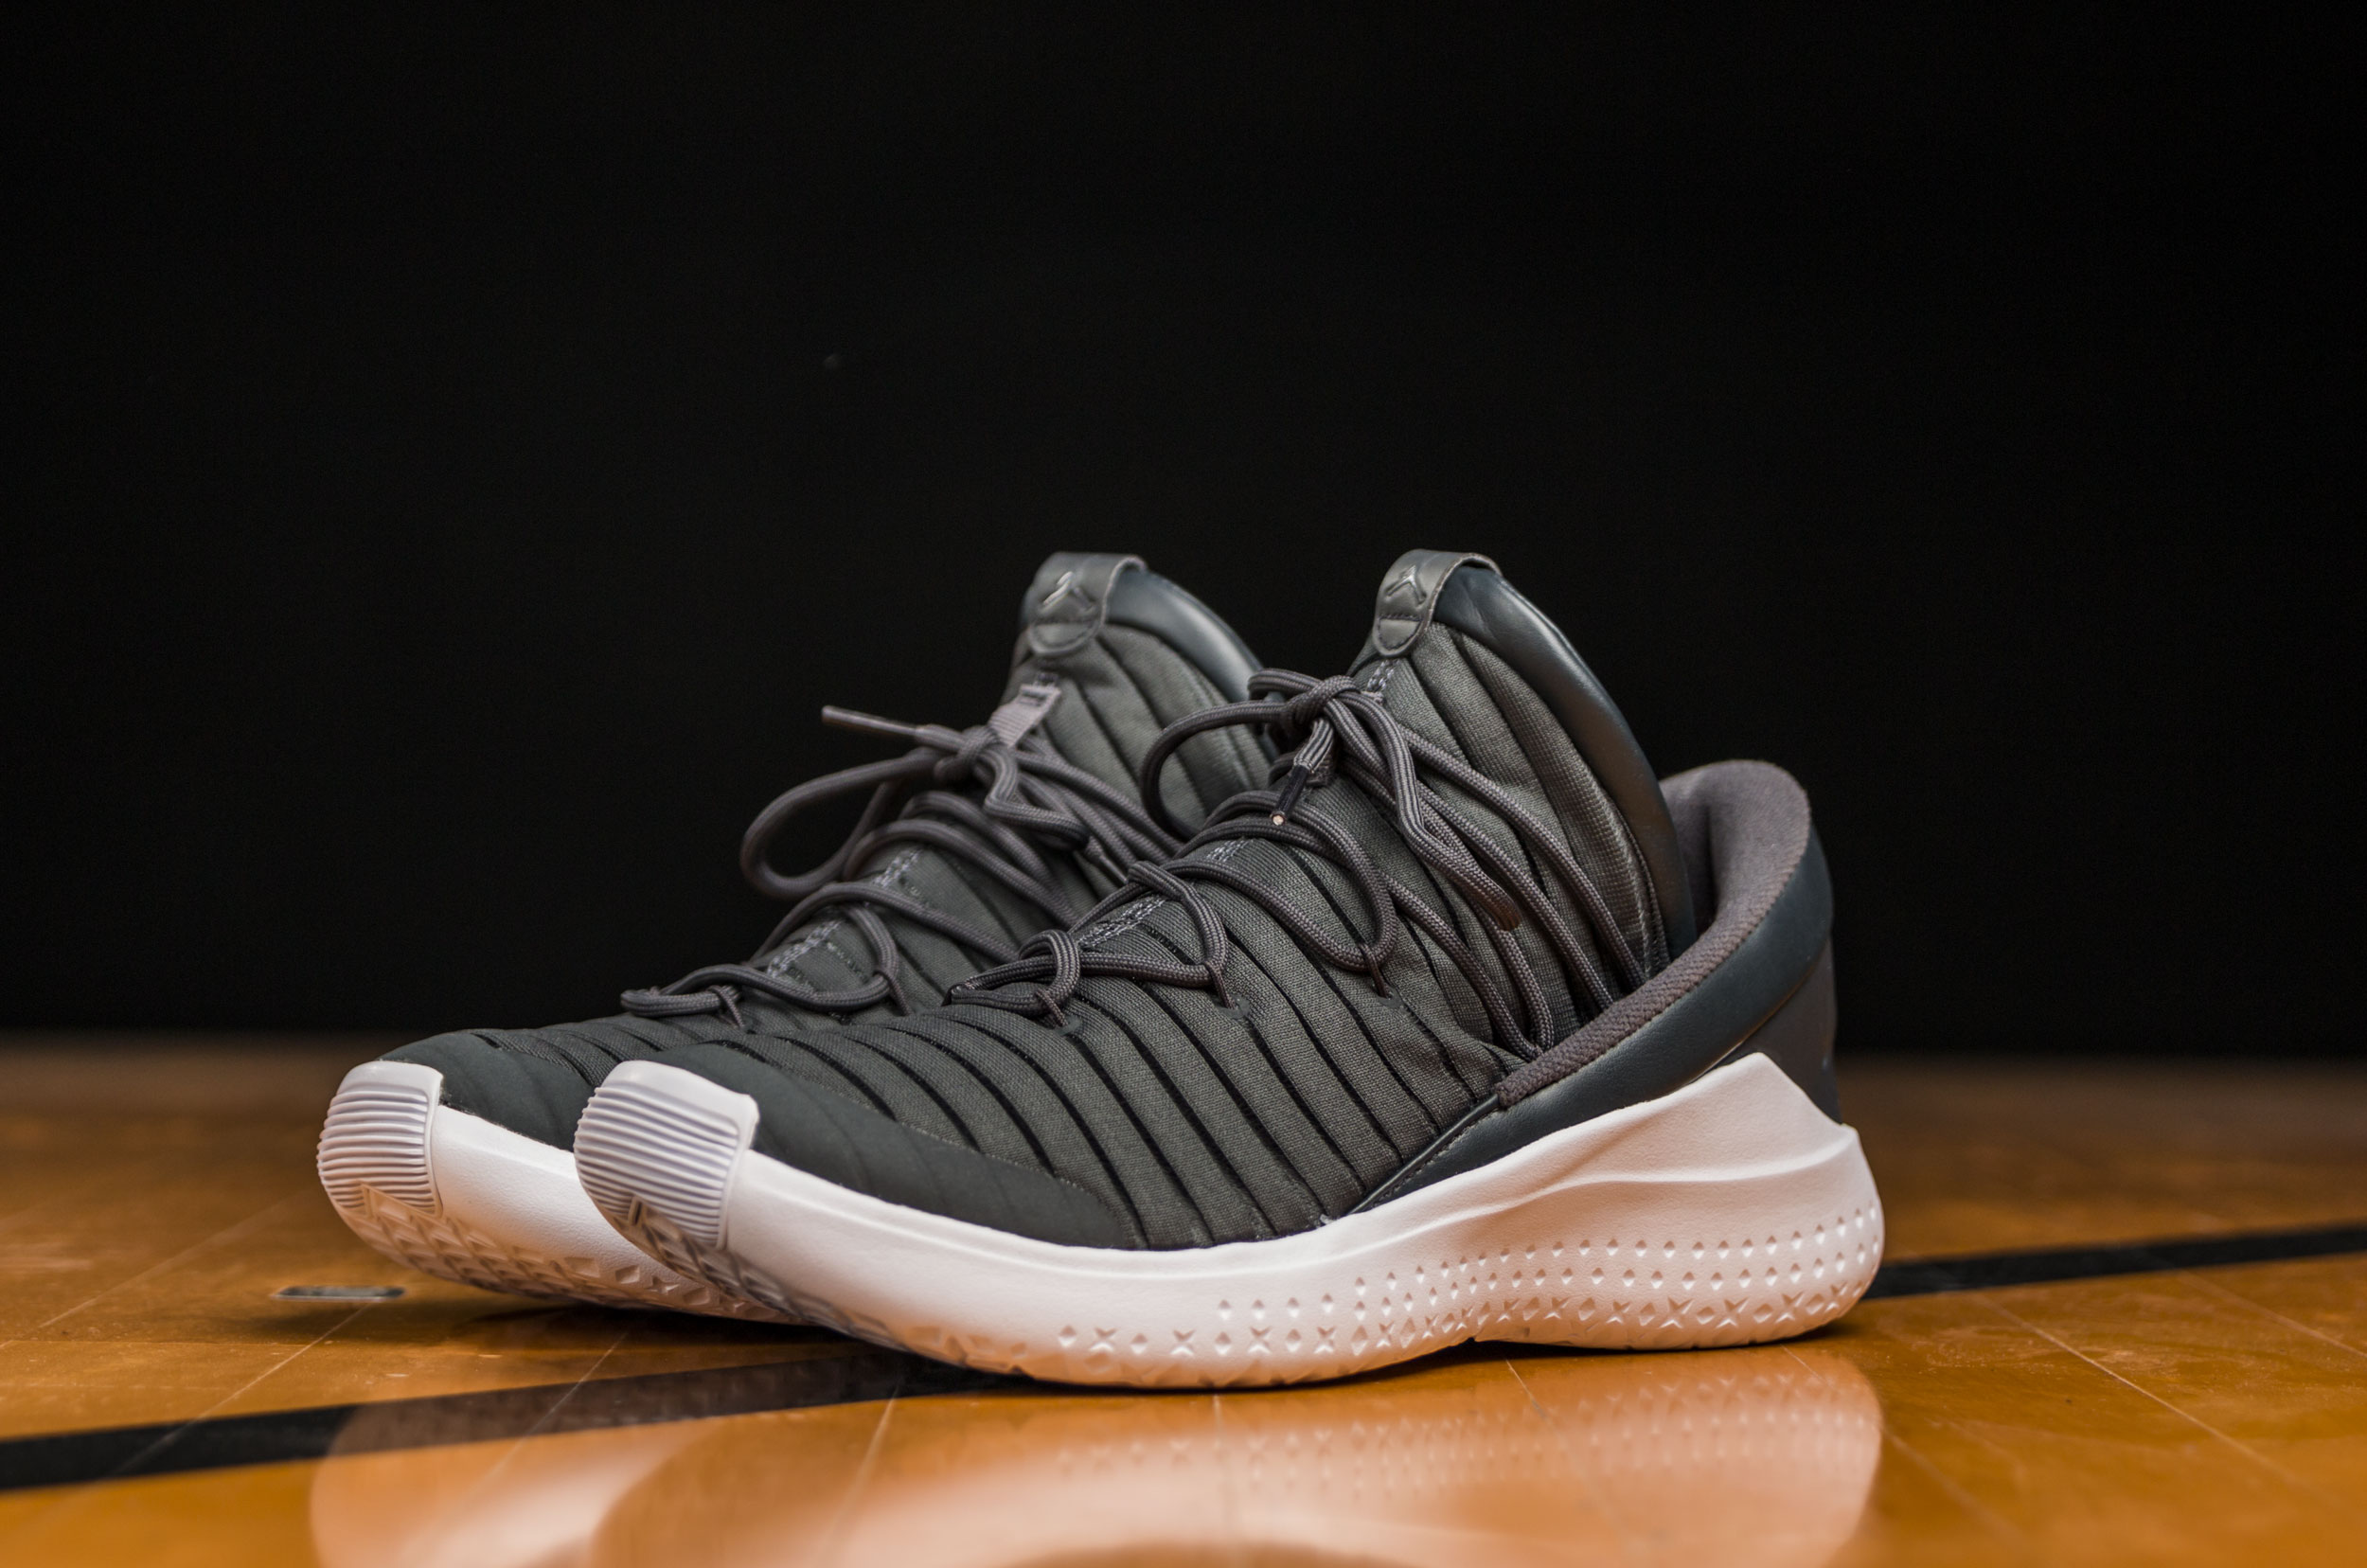 JORDAN FLIGHT LUXE 919715-005 Ανθρακί